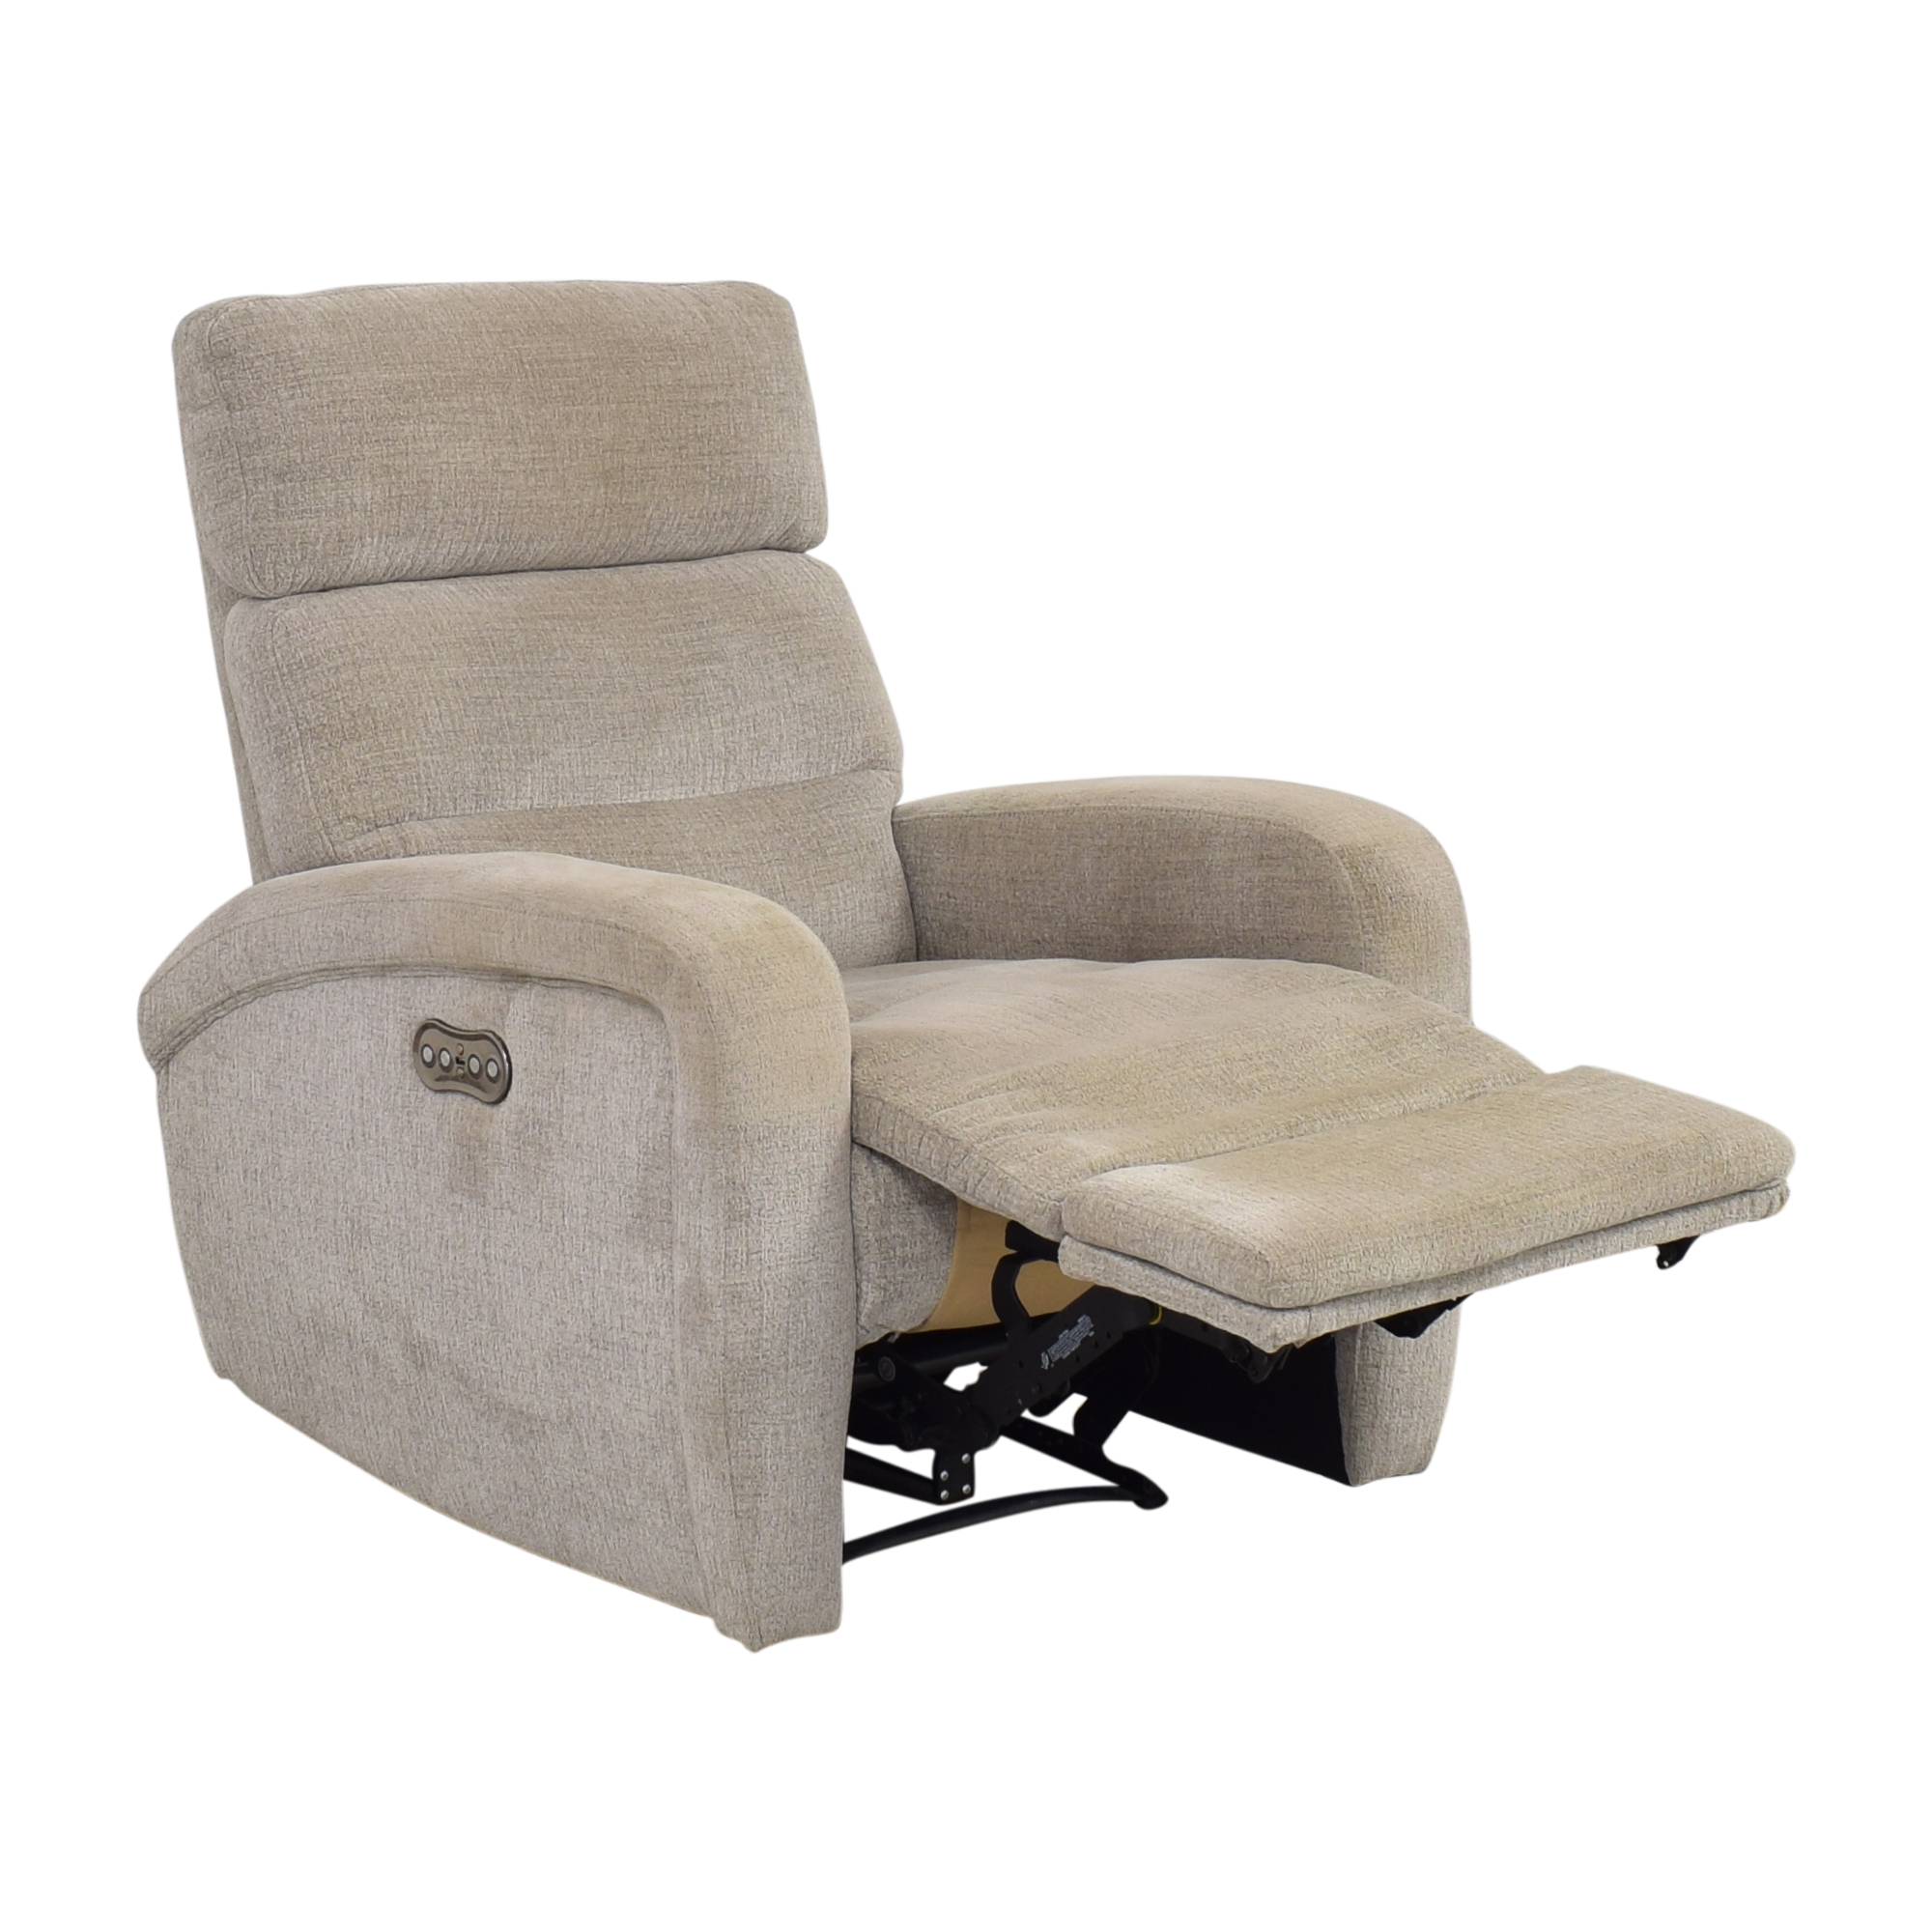 Macy's Macy's Stellarae Fabric Power Recliner